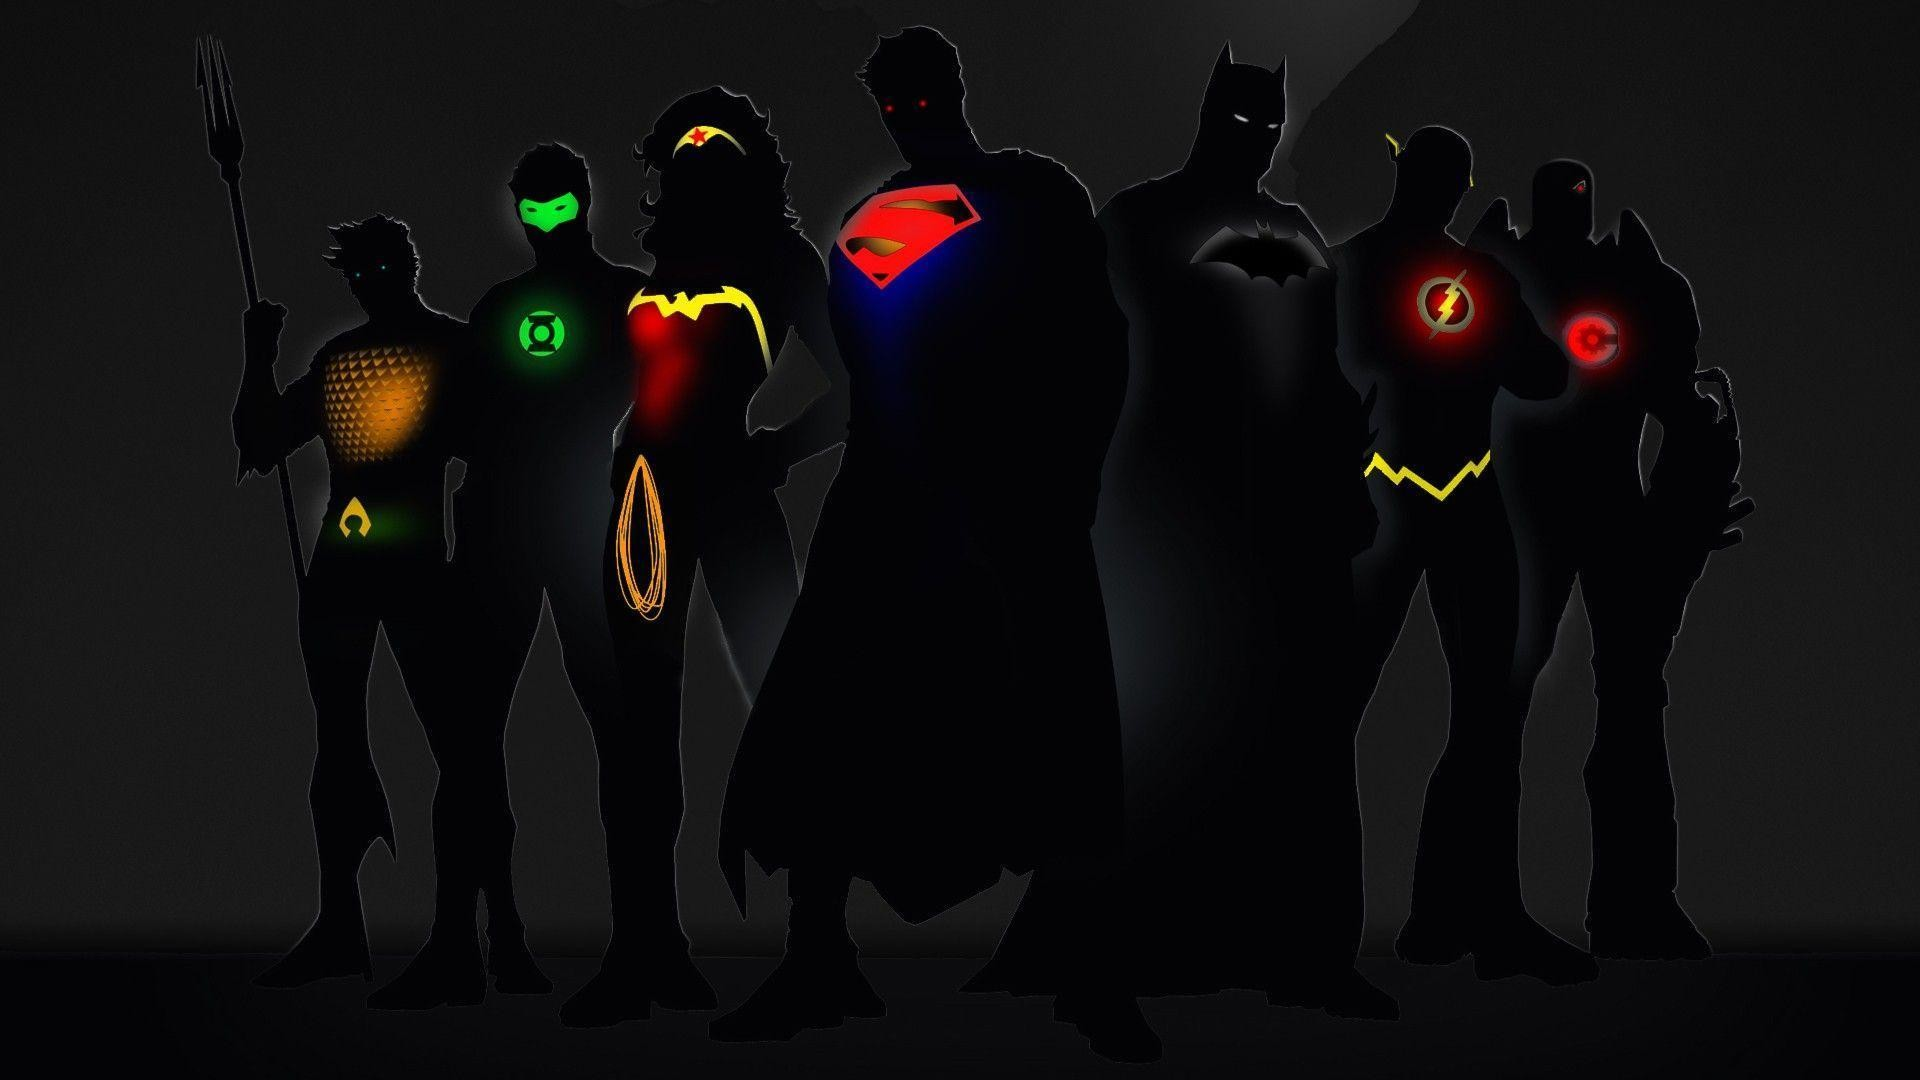 Super heroes wallpaper 64 images 1920x1080 justice league 1920x1080 wallpaper superhero wallpapers voltagebd Choice Image